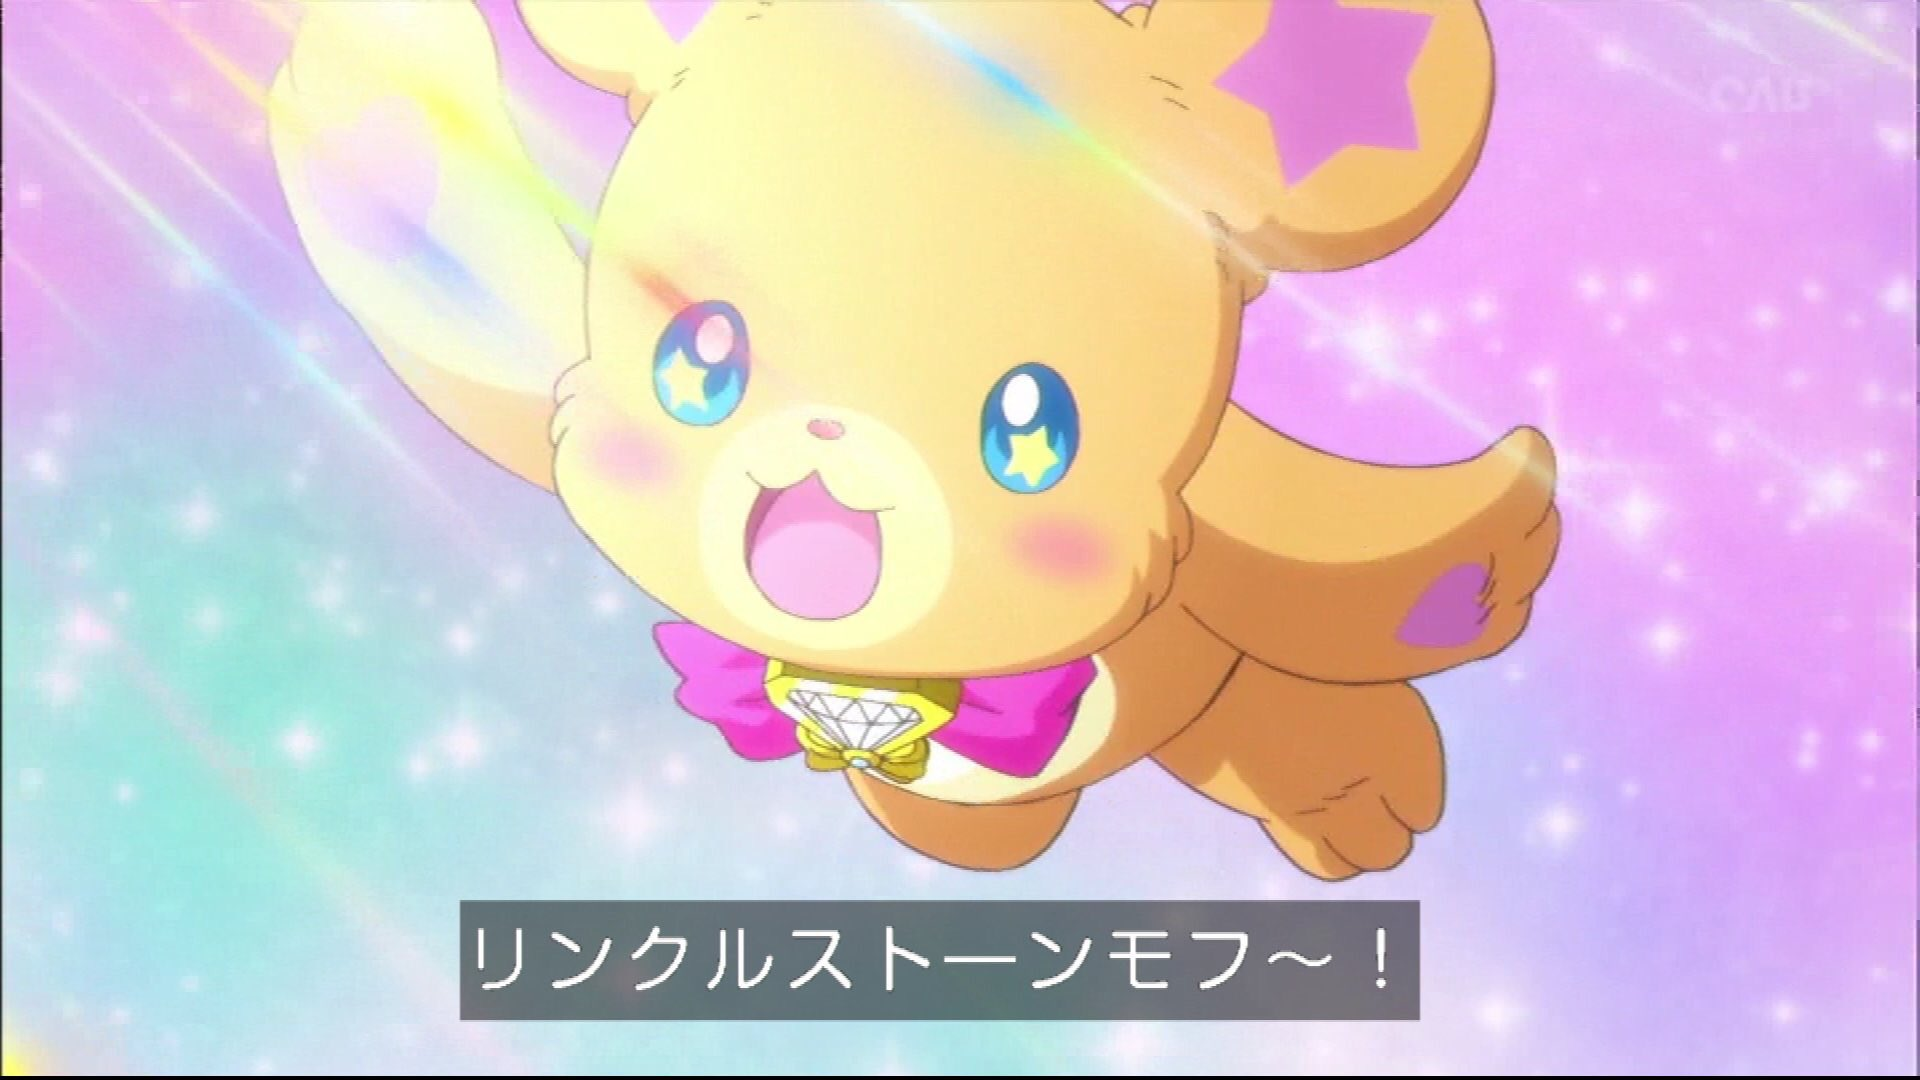 甘い匂いがするモフ♪ #precure https://t.co/FwY3VGwdWG